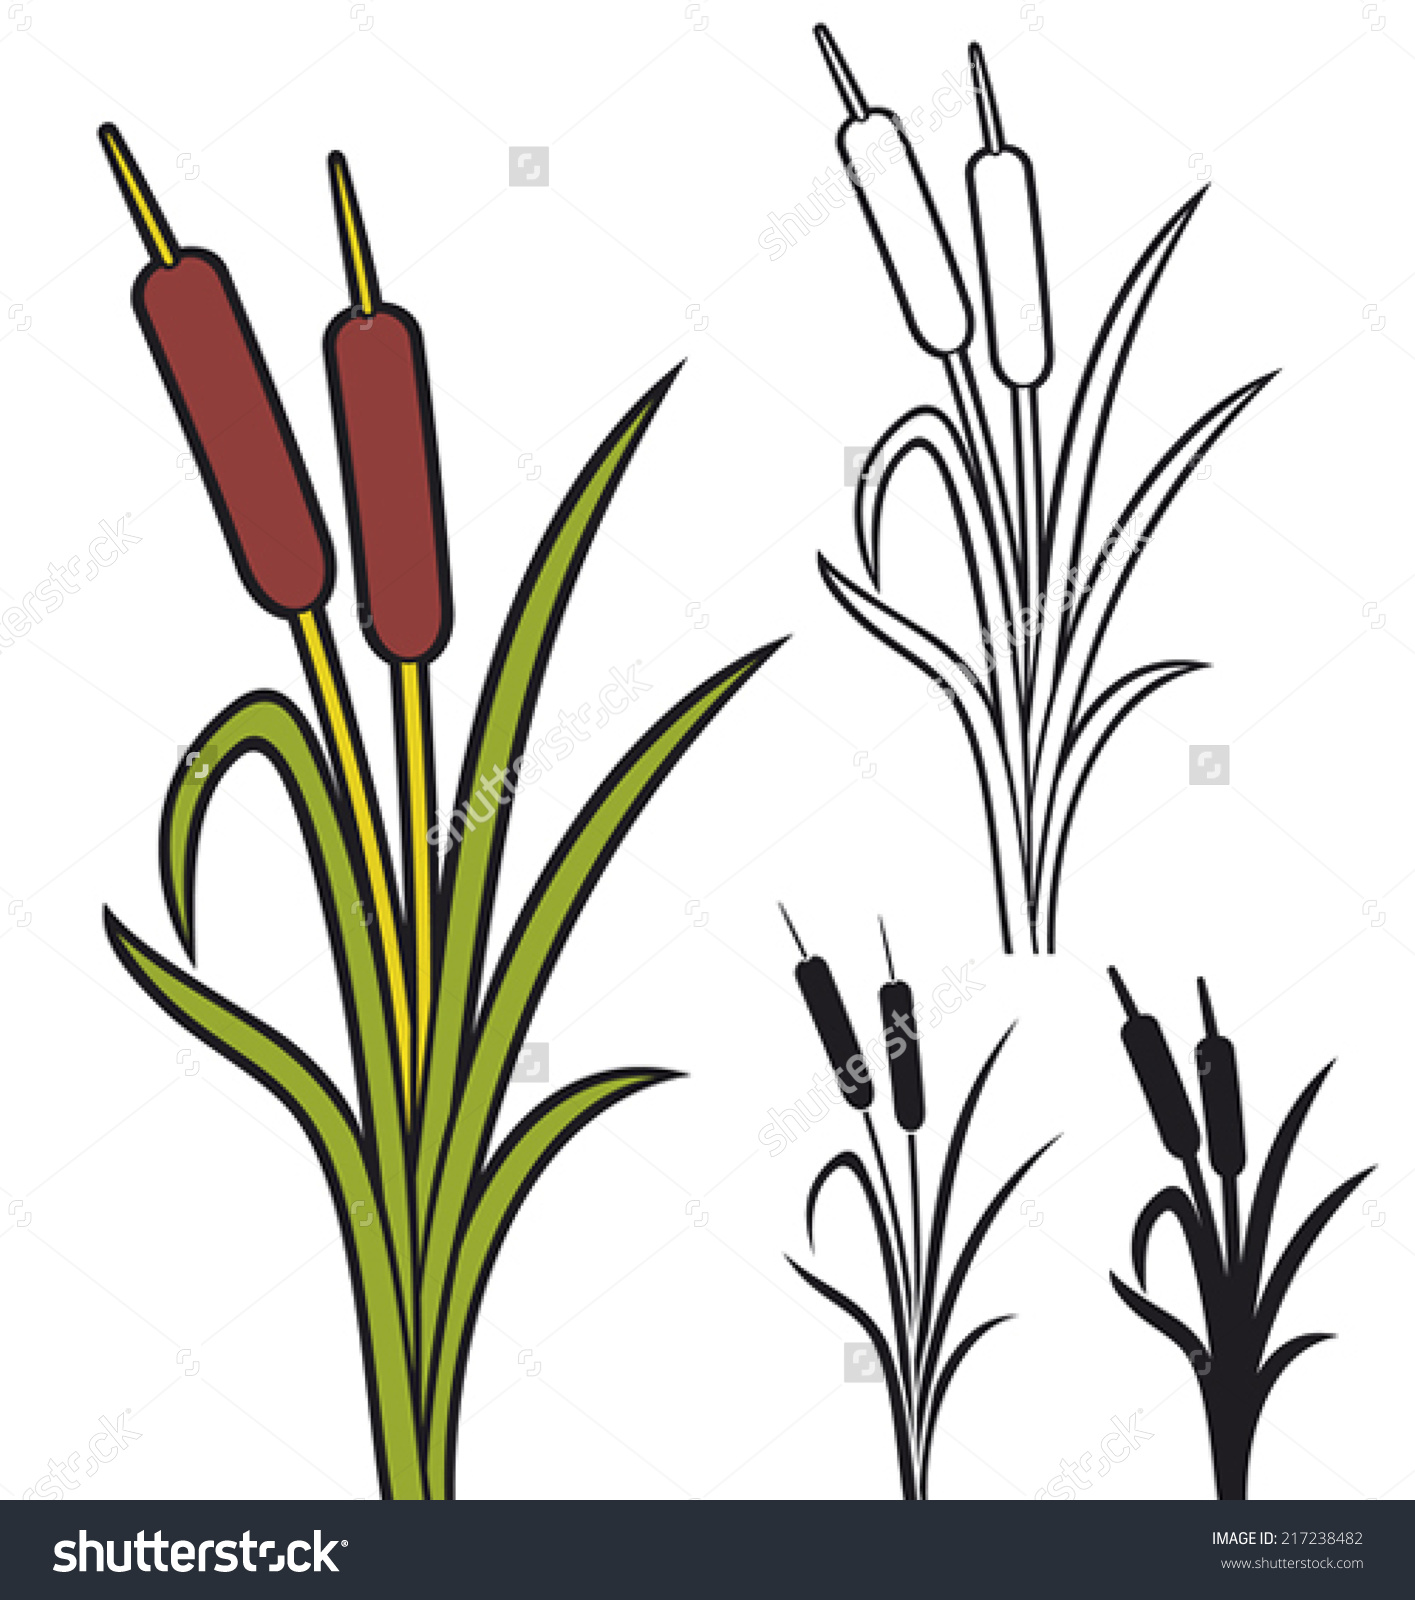 Reeds Vector Illustration Bulrush Grass Stock Vector 217238482.